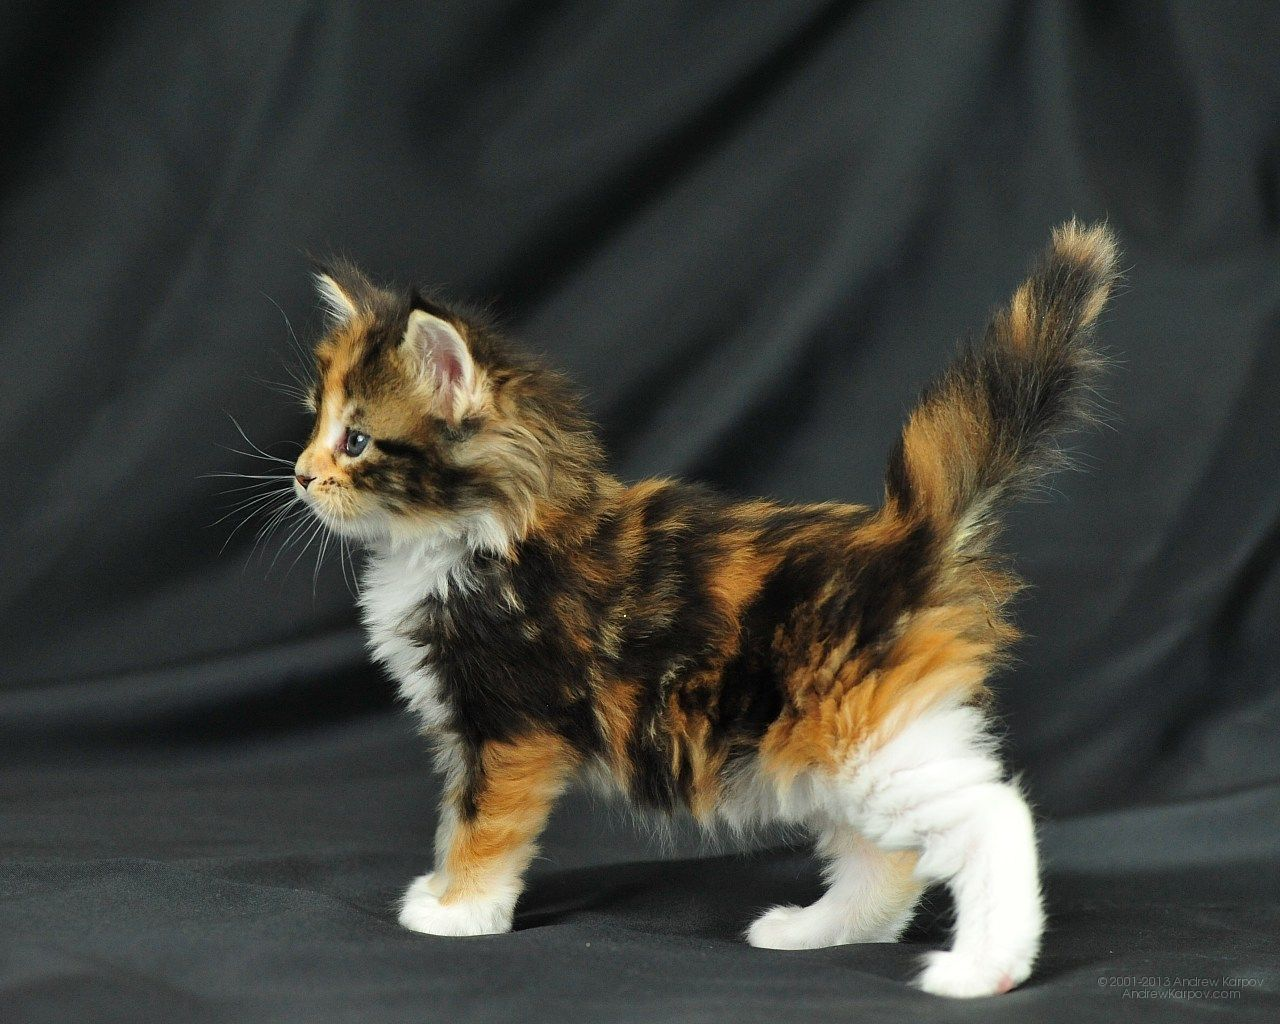 CAT SNIP Even when your kitten is growing quickly, do not